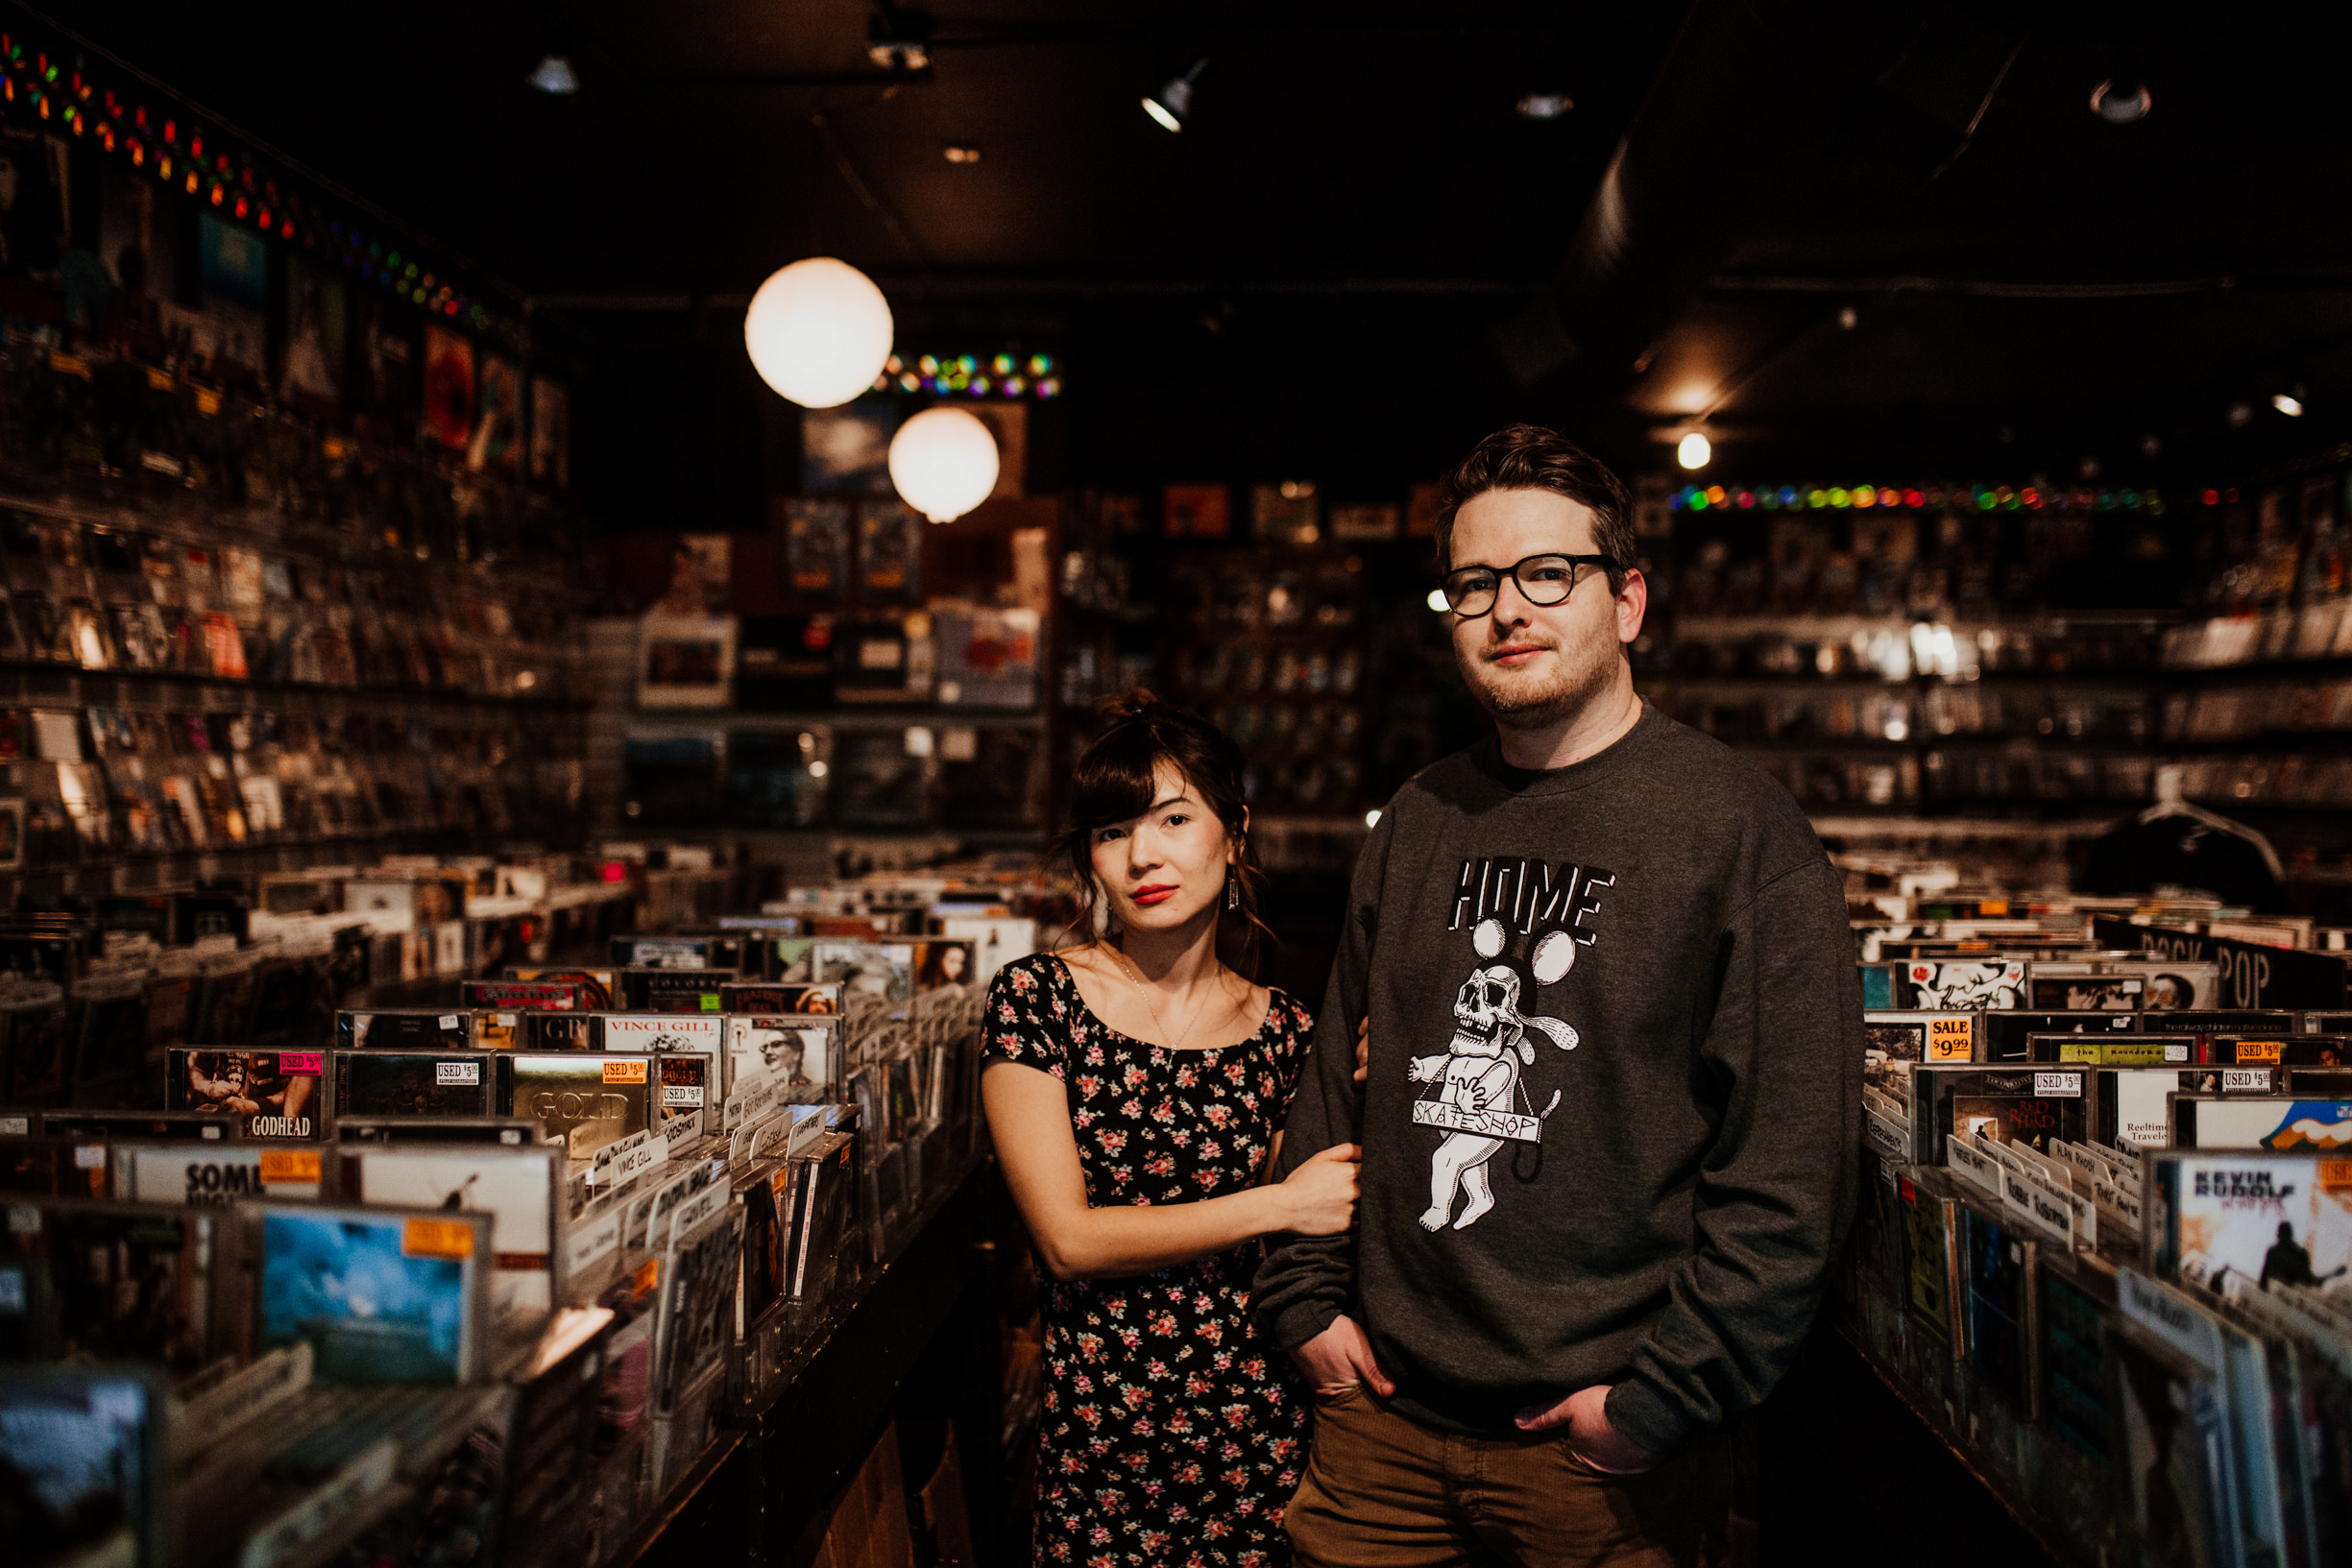 louisville-engagement-photographer-record-store-in-home-session-crystal-ludwick-photo (50 of 53).jpg